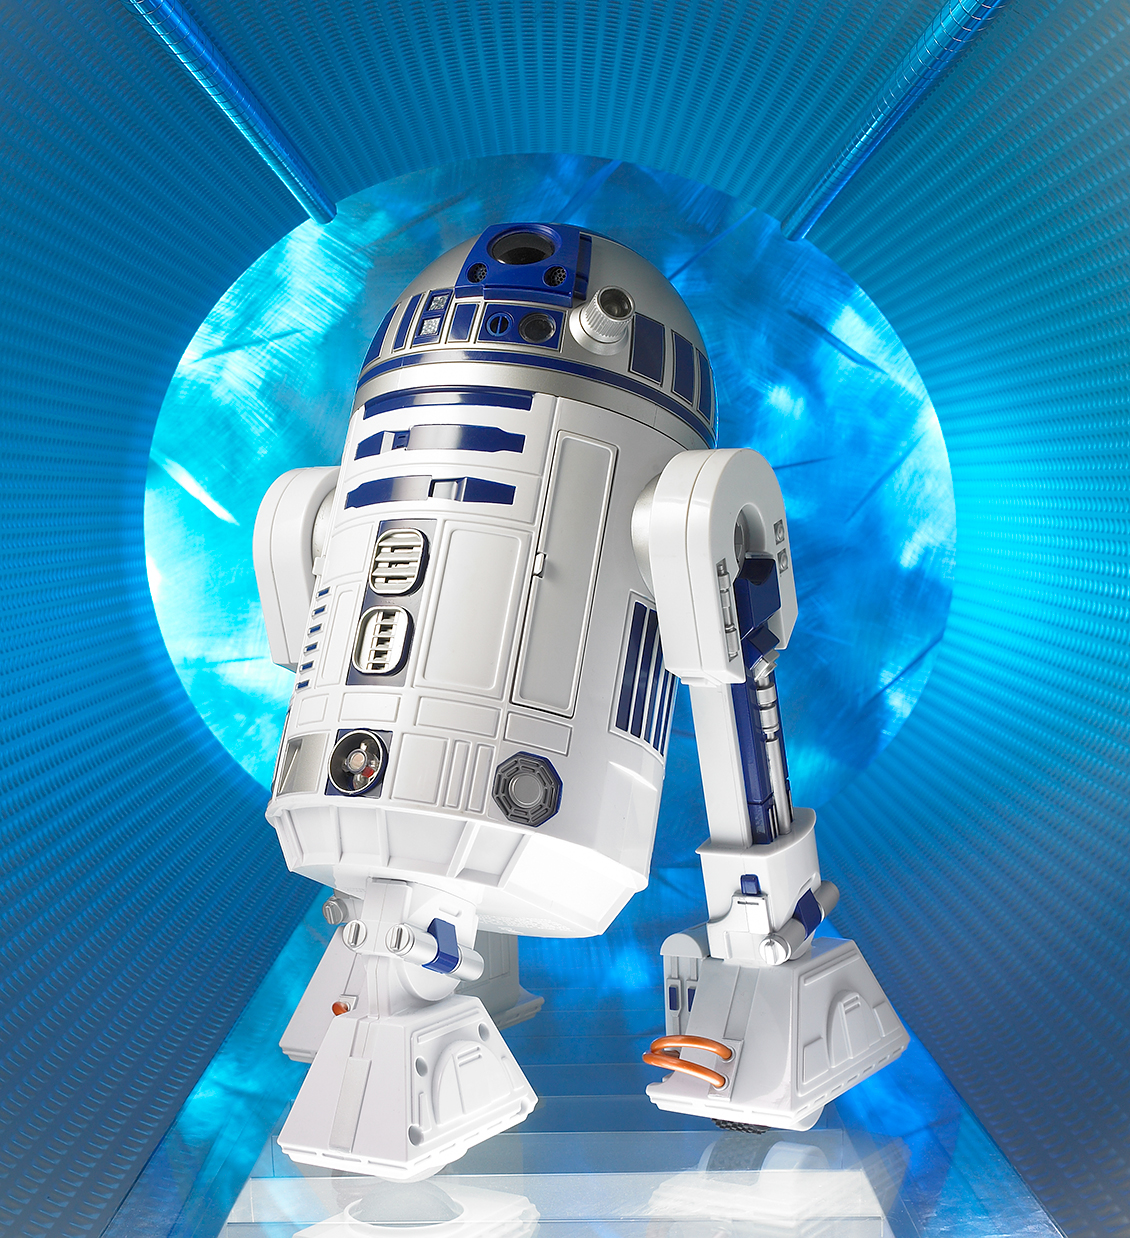 R2D2 Star Wars art diretor for product advertising